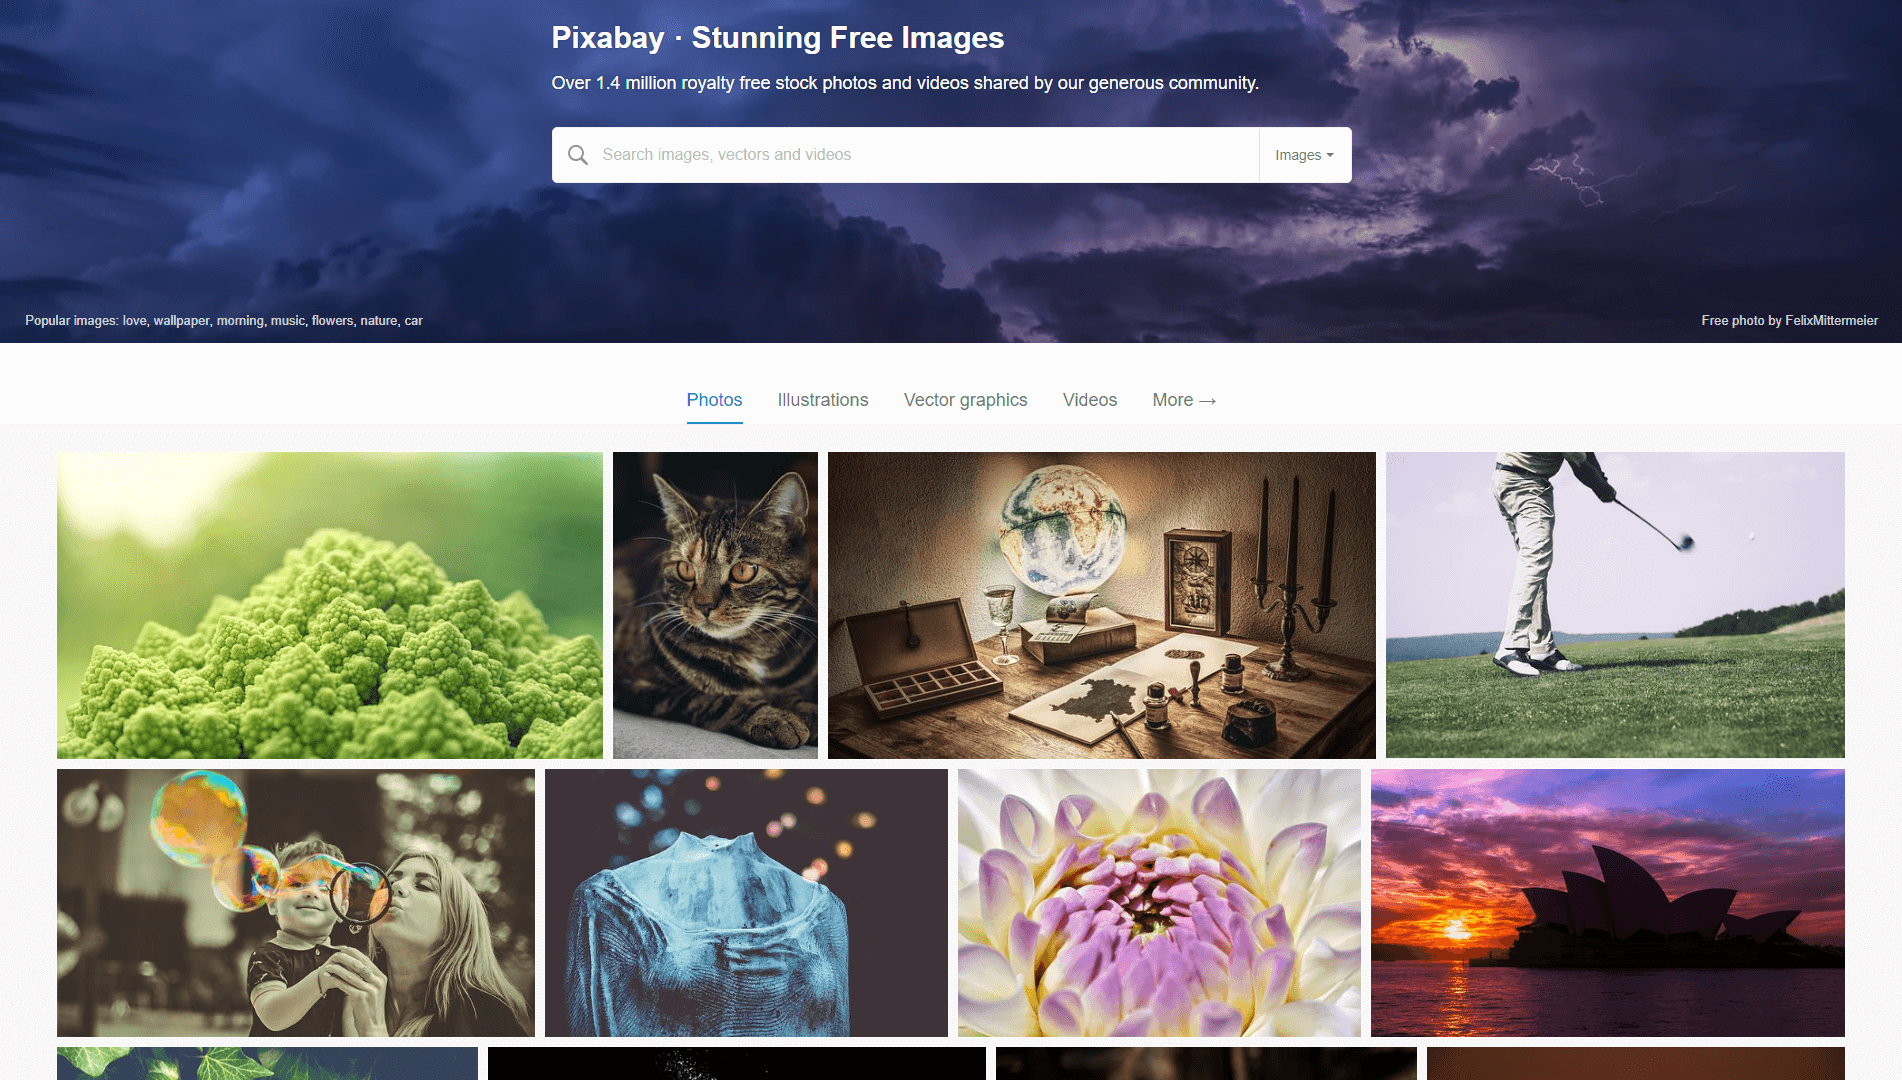 The Pixabay homepage.